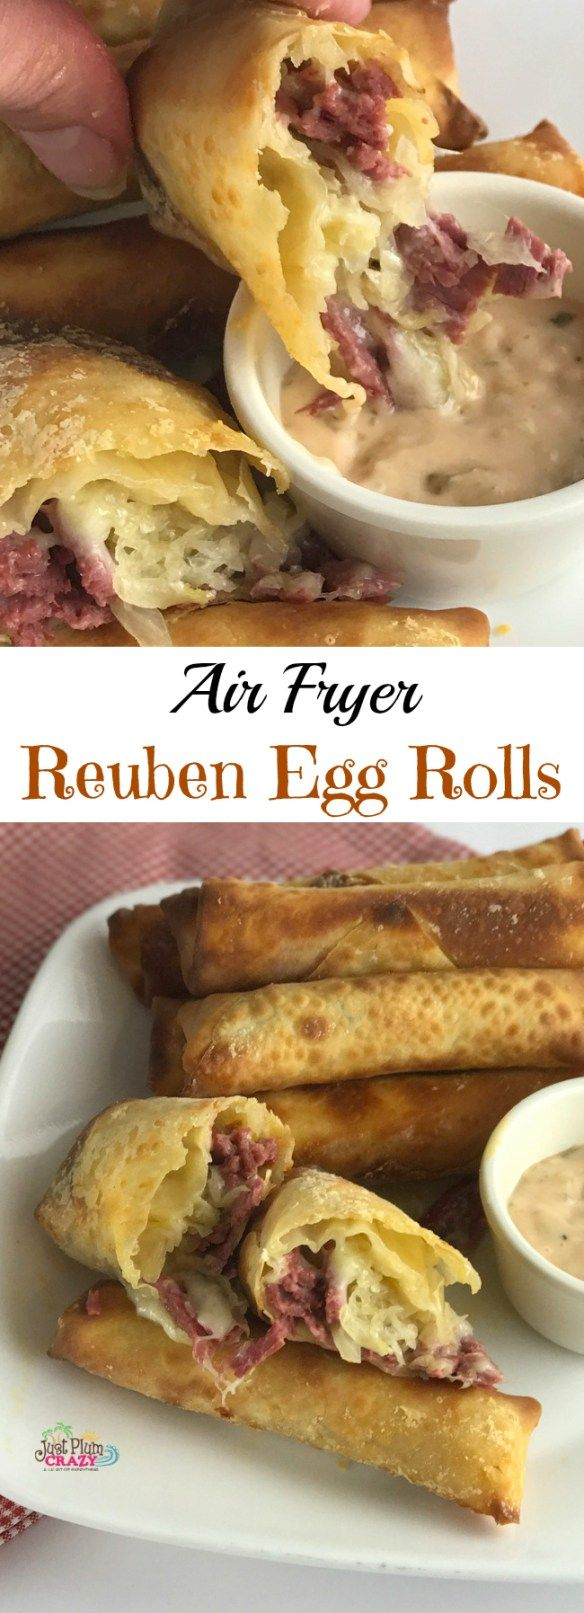 Air Fryer Reuben Egg Rolls recipe for St. Patrick's Day is filled with Corned Beef, Melted Swiss Cheese, Sauerkraut and dipped in 1000 Island dressing.